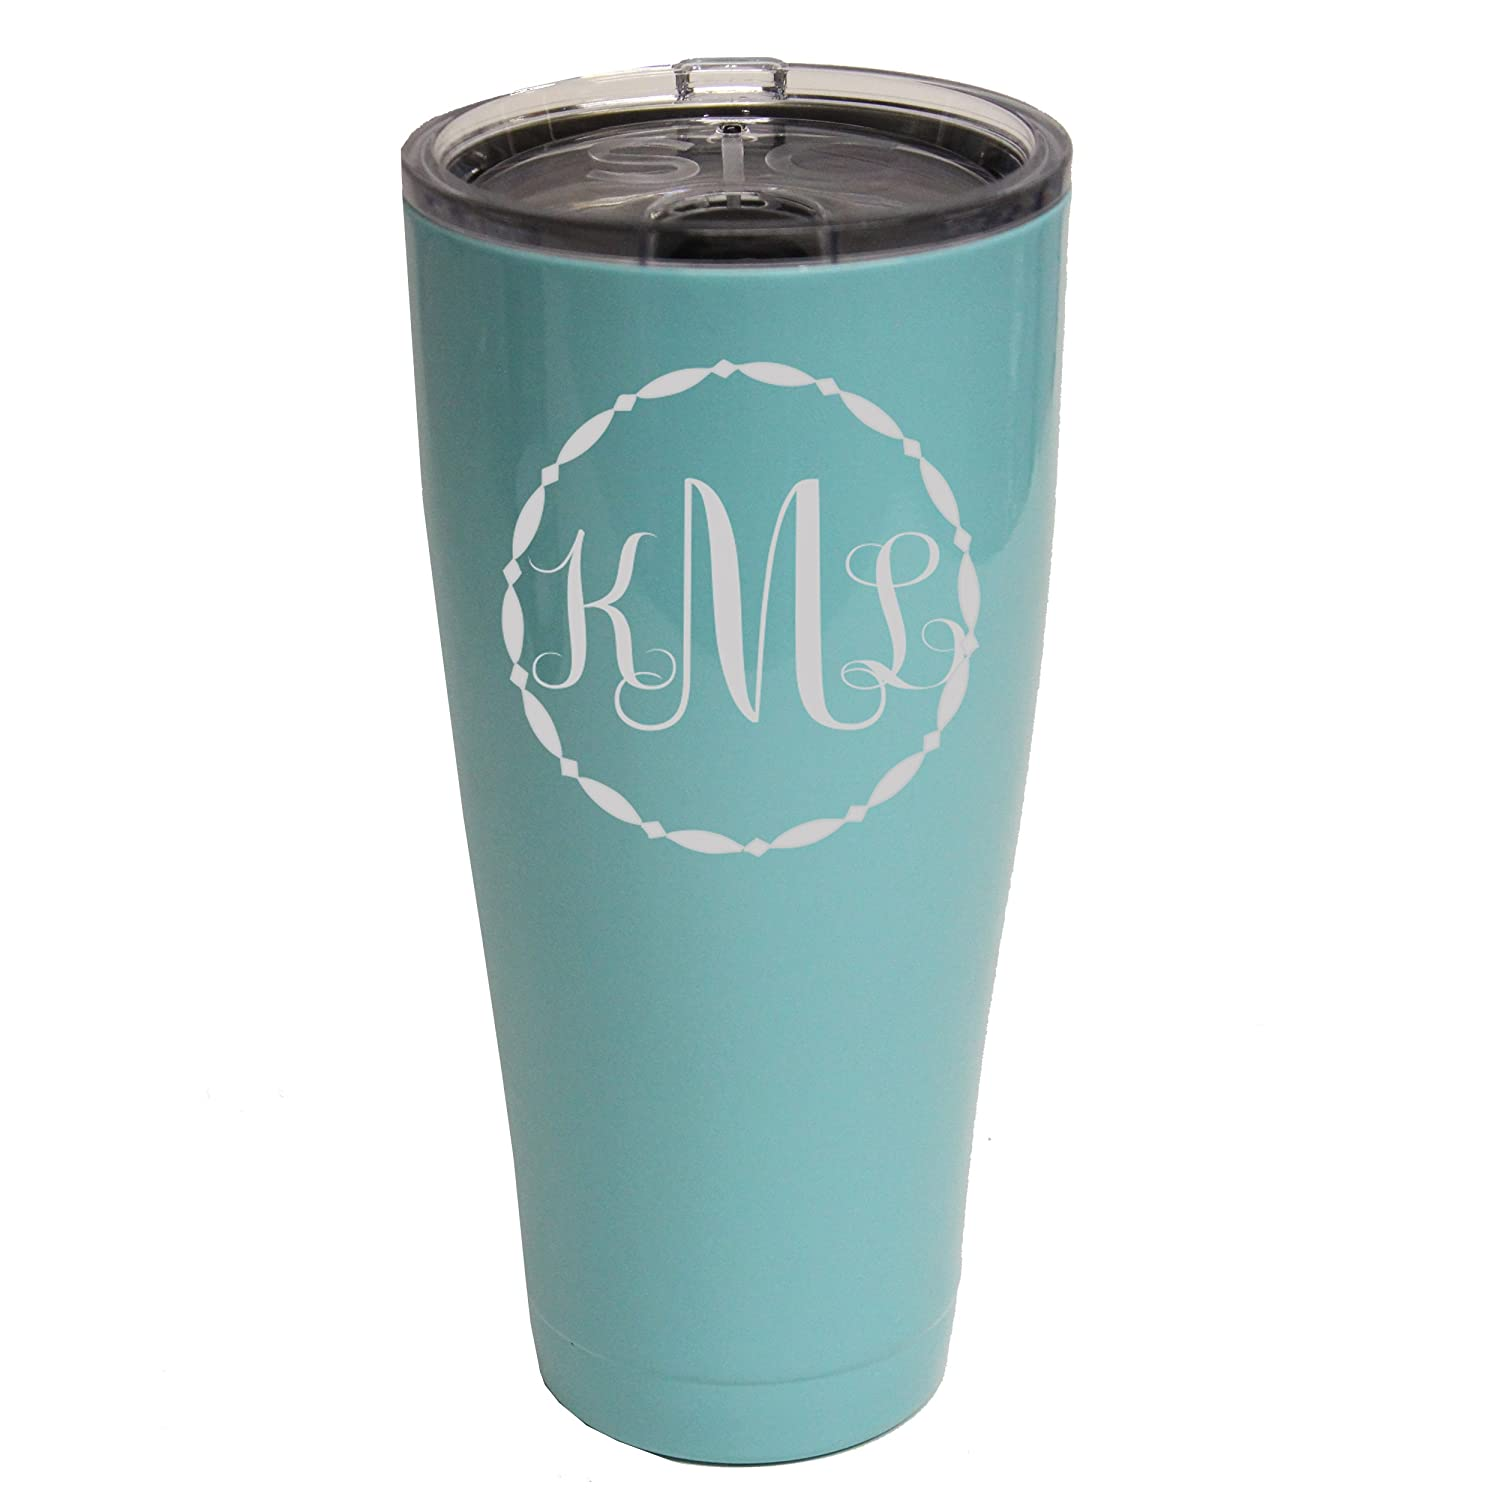 3a9bdcdc4e5 Personalized SIC Cup Tumbler - Engraved 20 oz Powder Coated Cups with  Double Walled Vacuum Sealed - Fancy Monogram Design (Seafoam Blue)